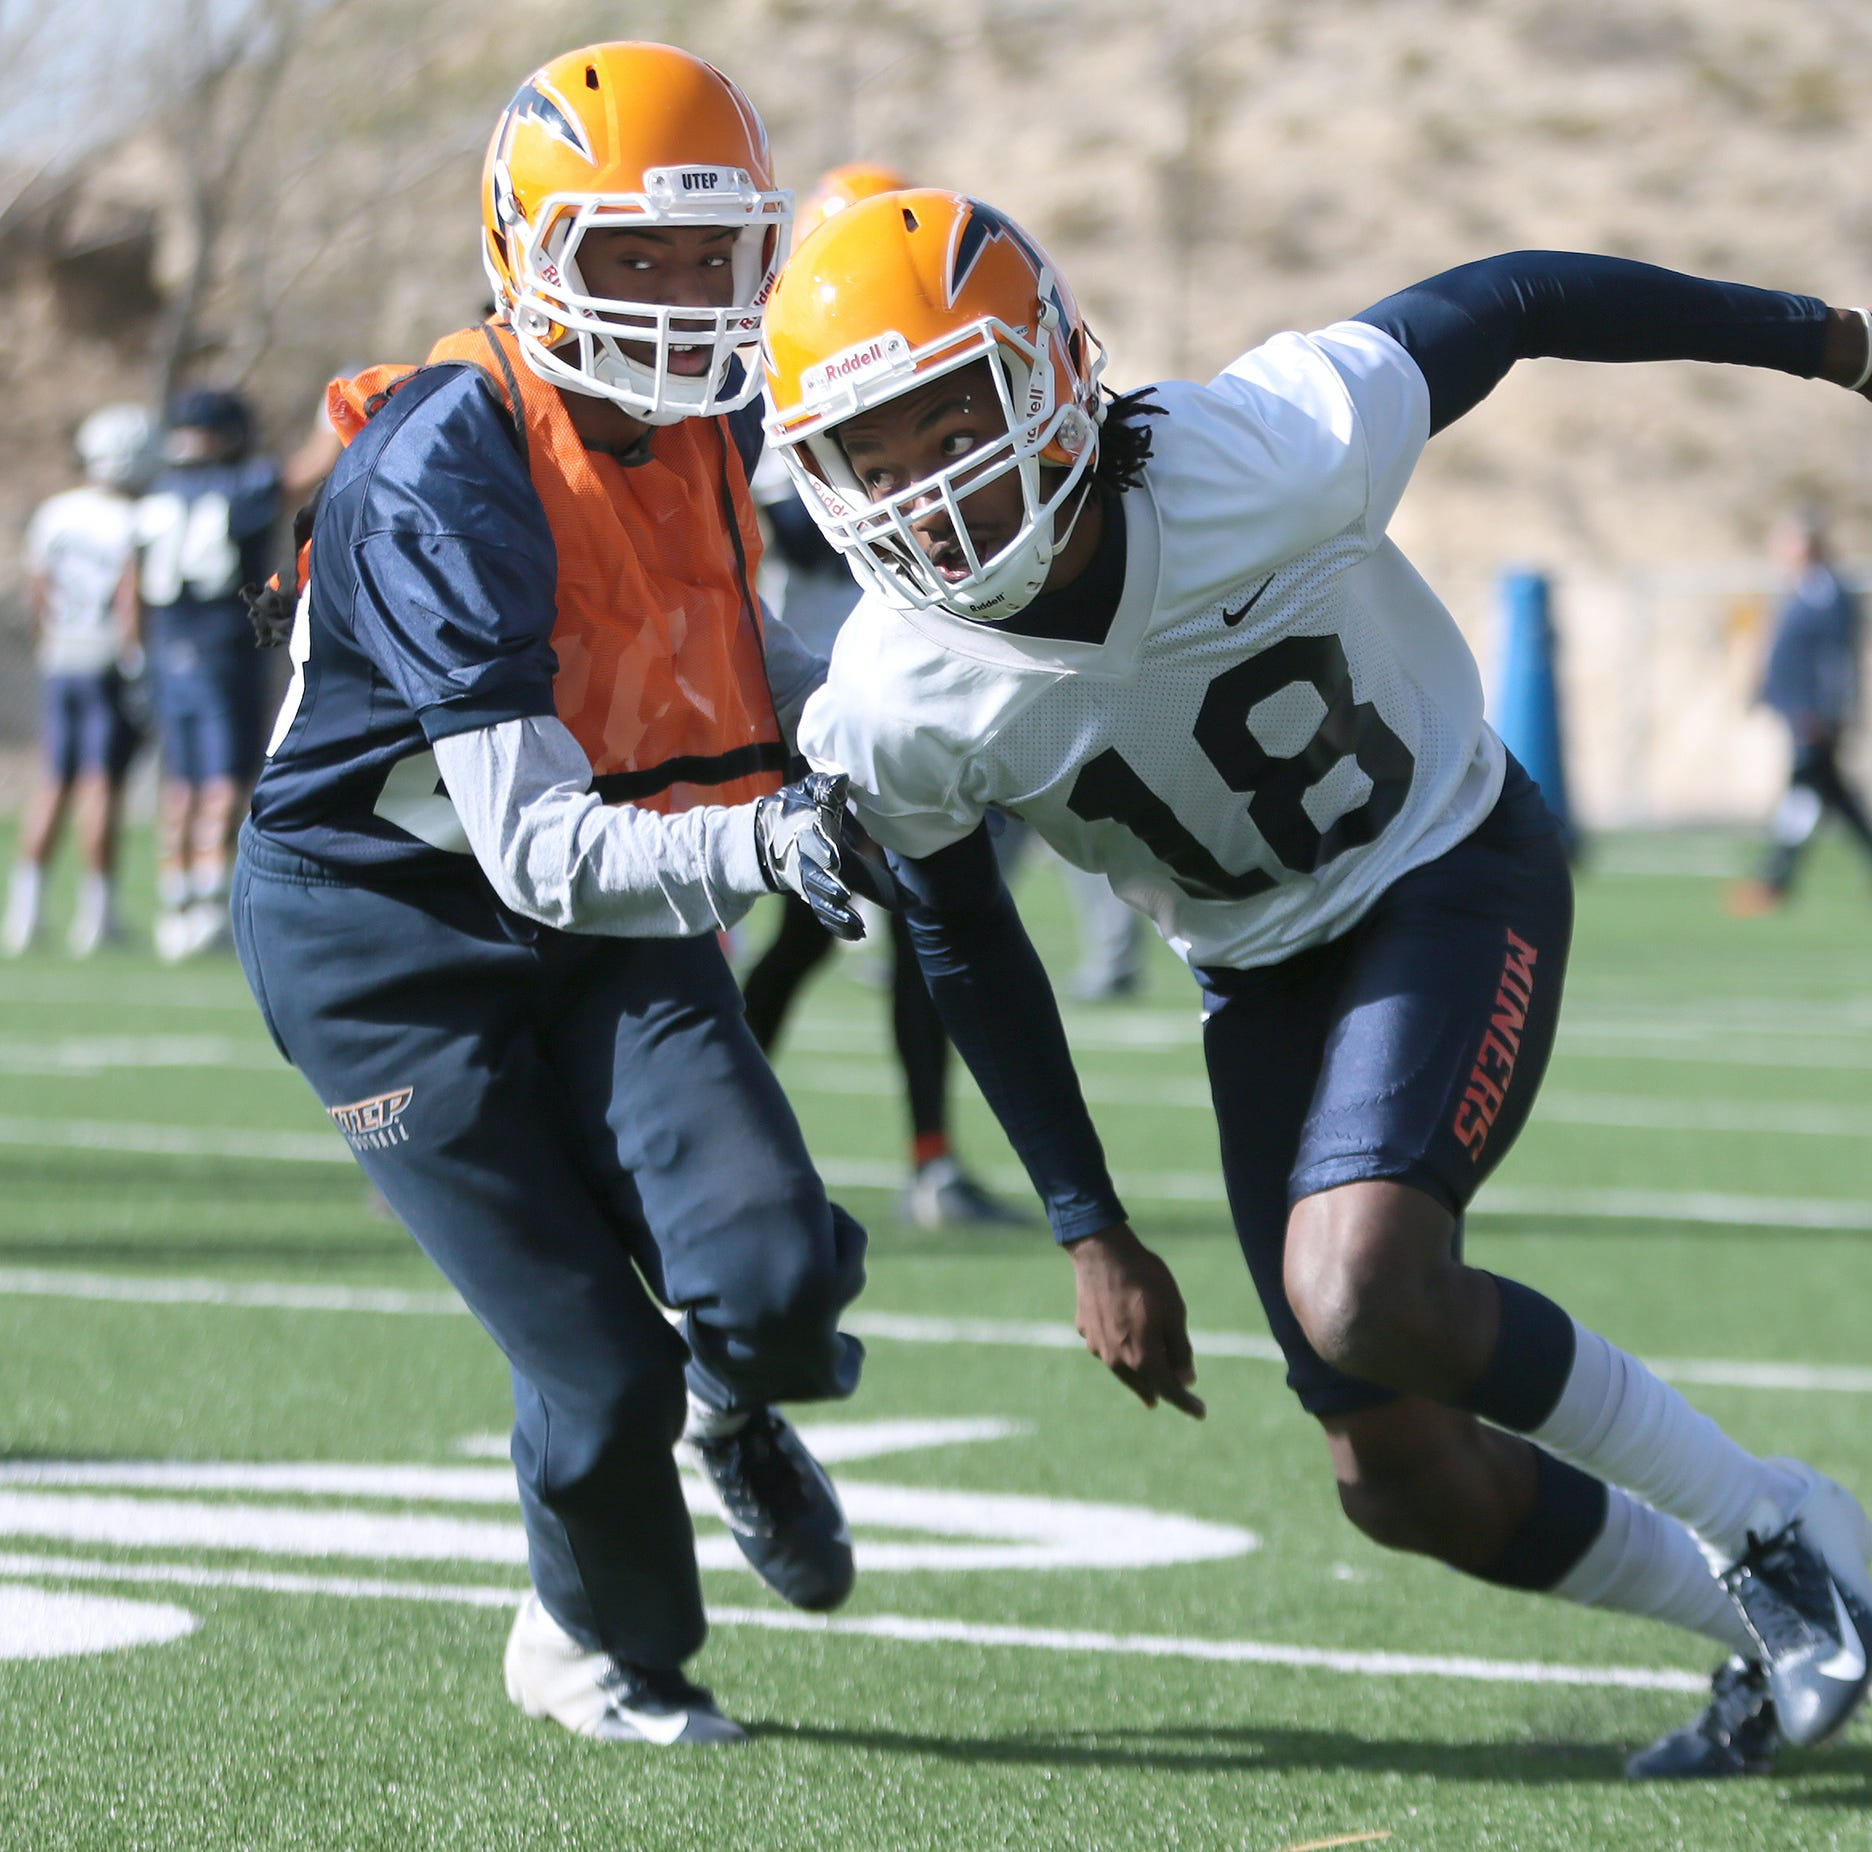 UTEP Miners football team quickly reloads at cornerback position